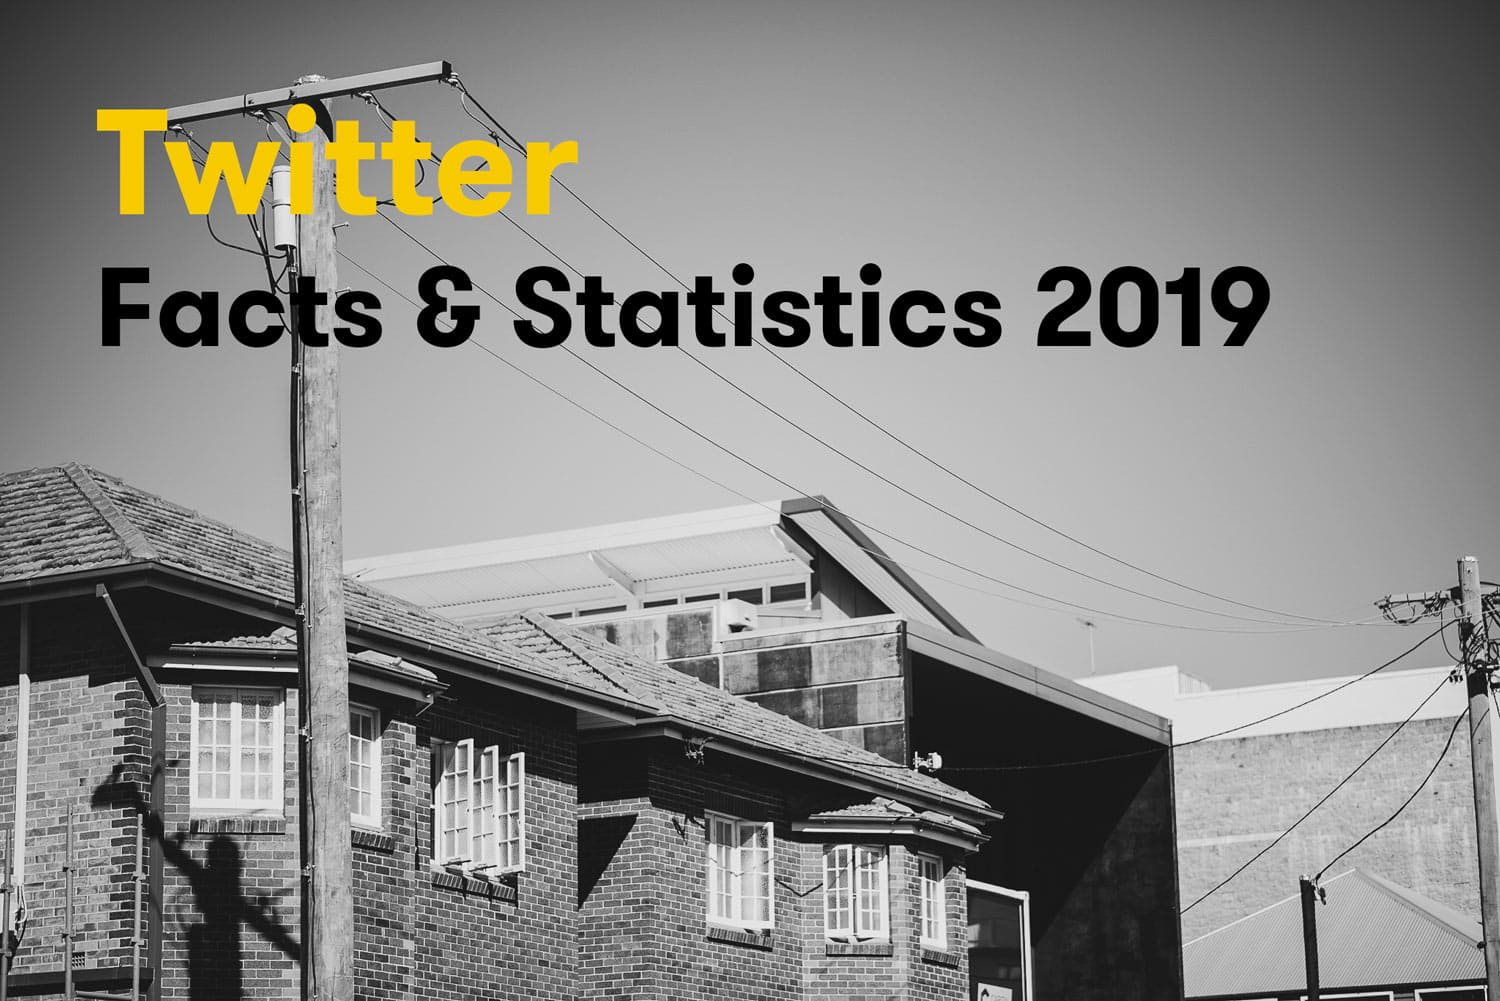 Twitter Facts & Statistics 2019 [Infographic]